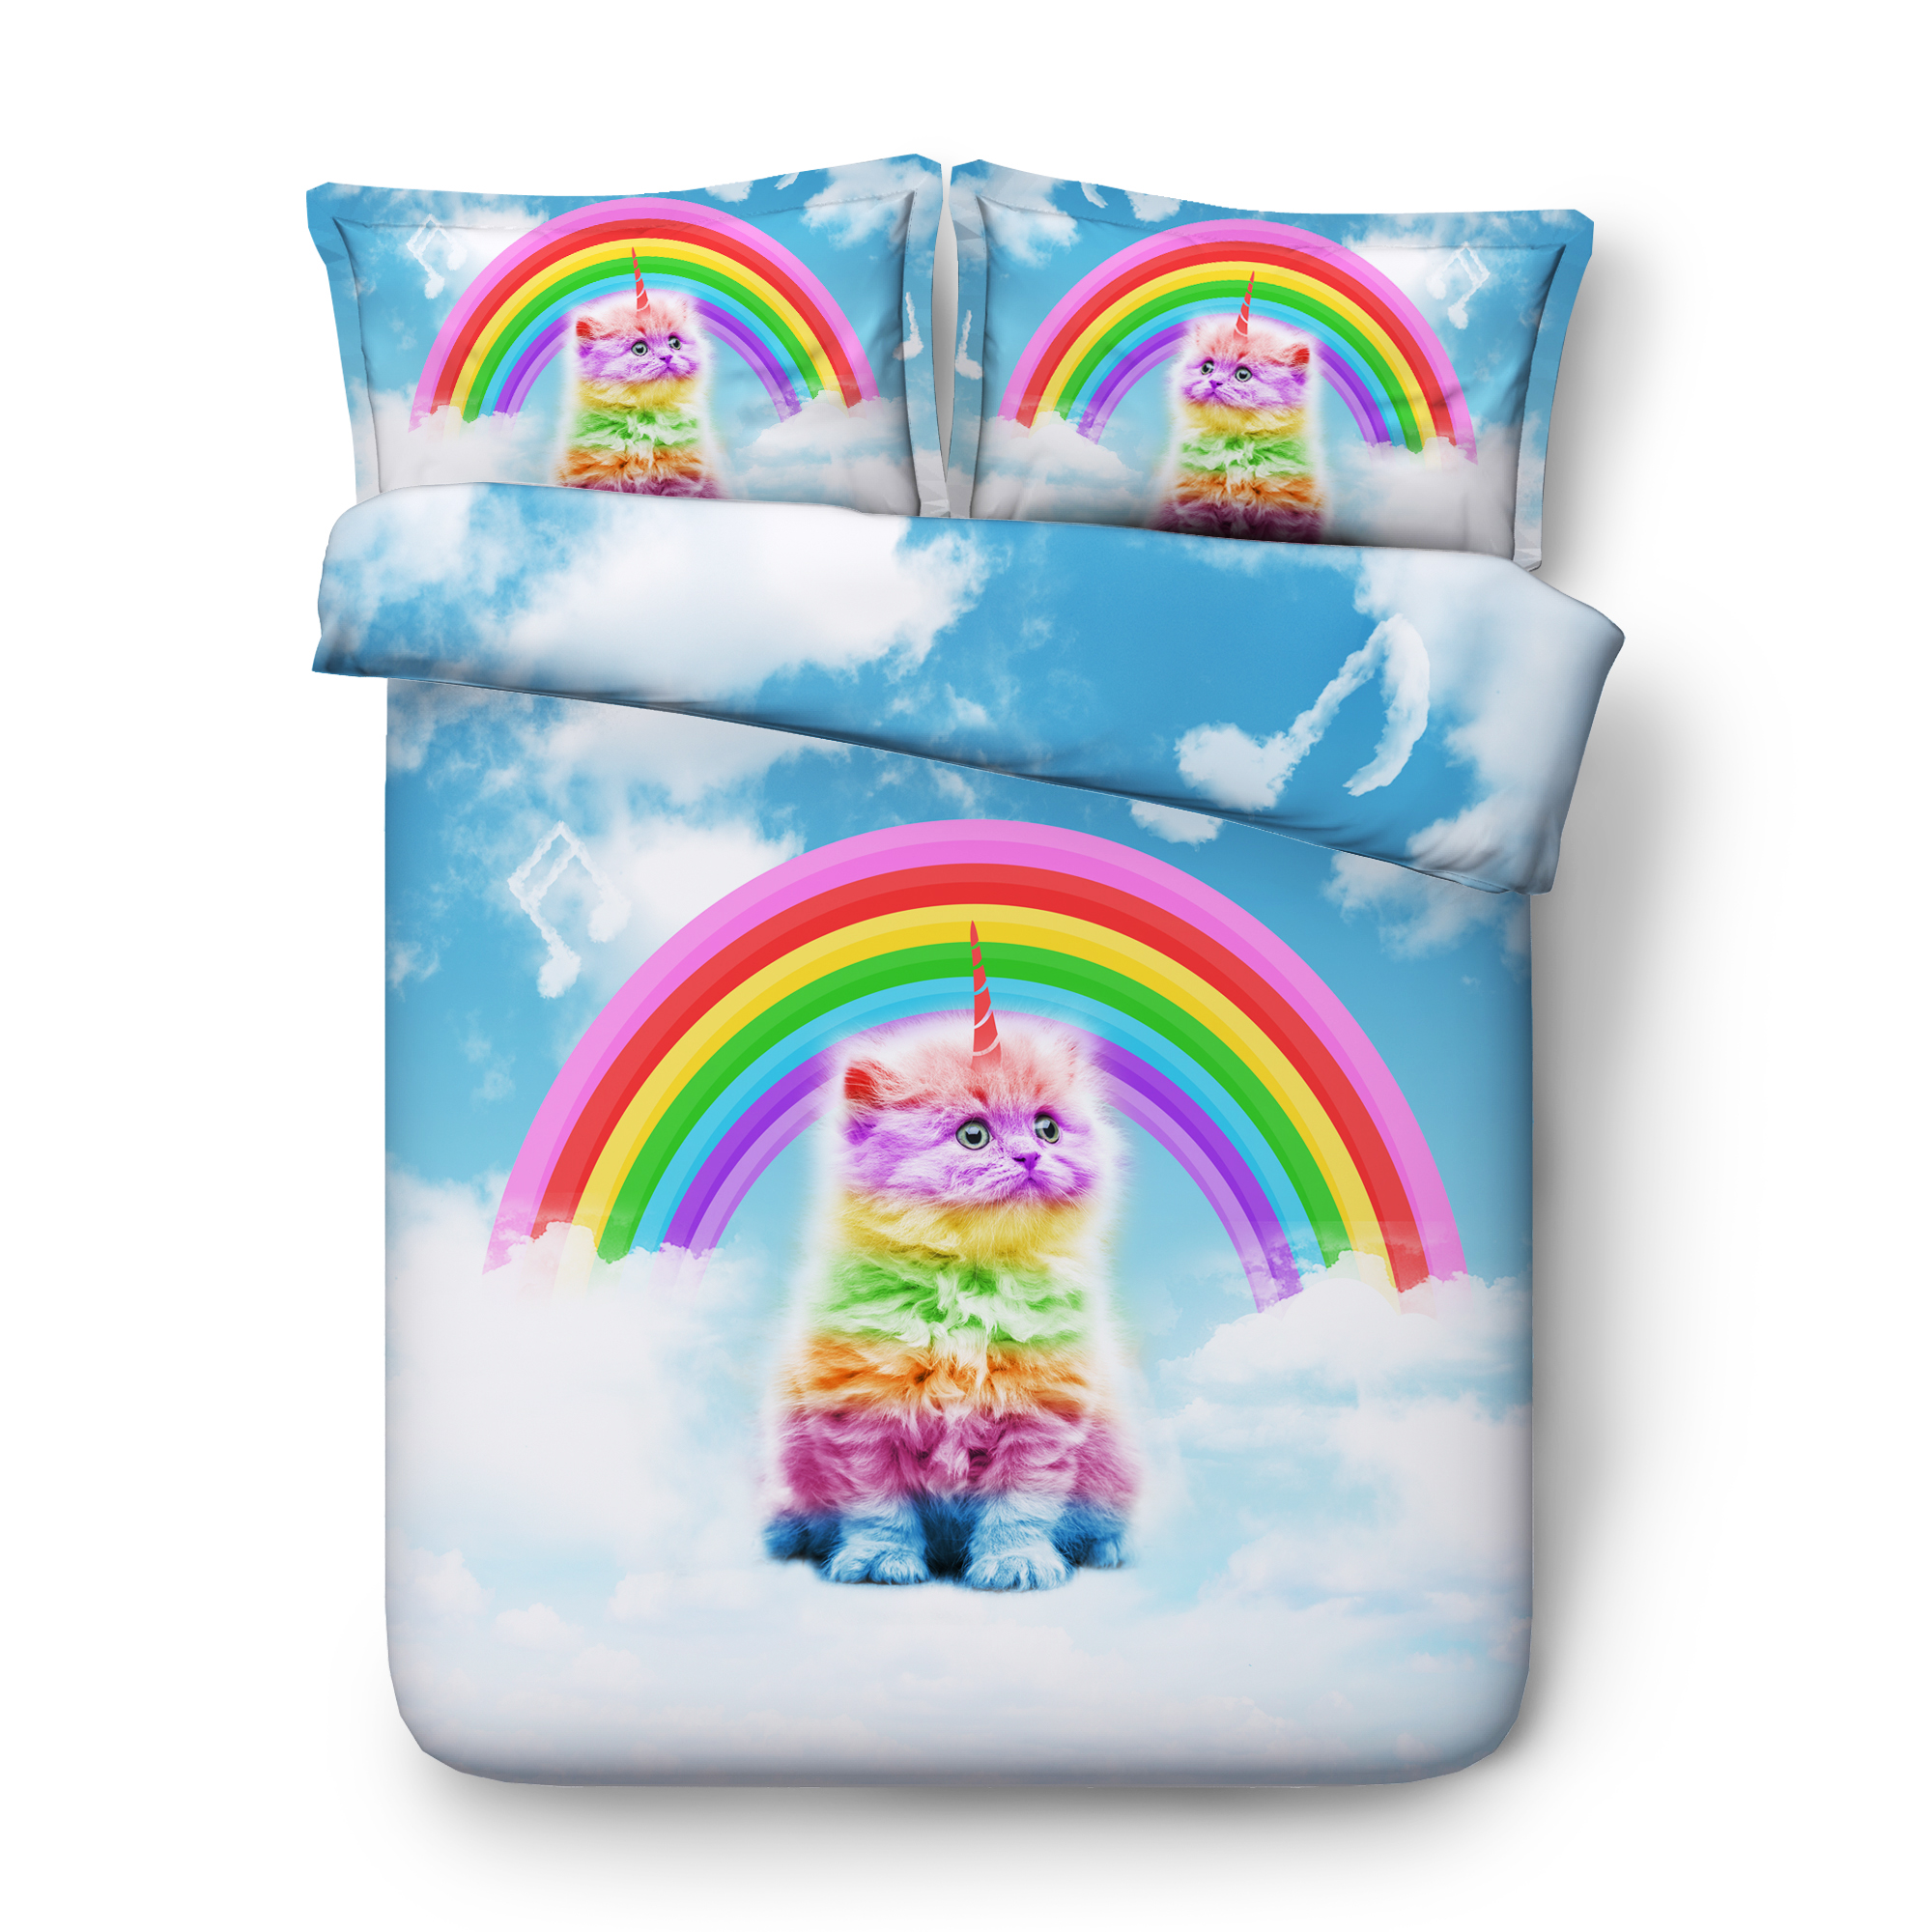 Cloud rainbow cat Digital print Bedding Set  Quilt Cover  Design Bed Set Bohemian a Mini Van Bedclothes 3pcs JF600Cloud rainbow cat Digital print Bedding Set  Quilt Cover  Design Bed Set Bohemian a Mini Van Bedclothes 3pcs JF600